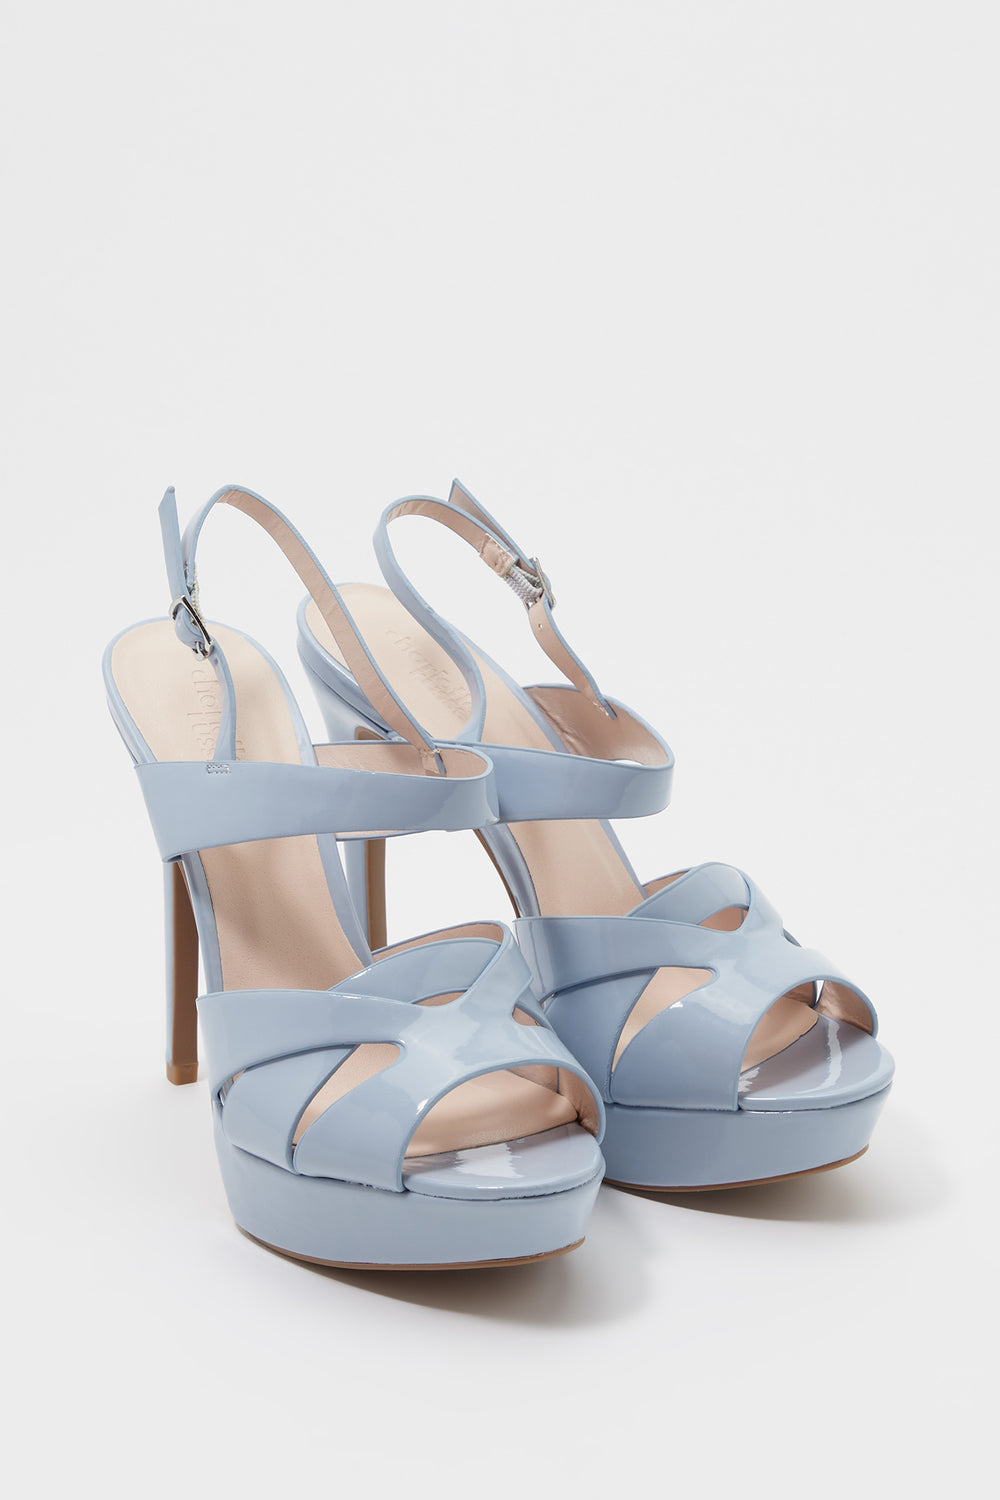 Shine Platform Stiletto Heel Sandal Light Blue